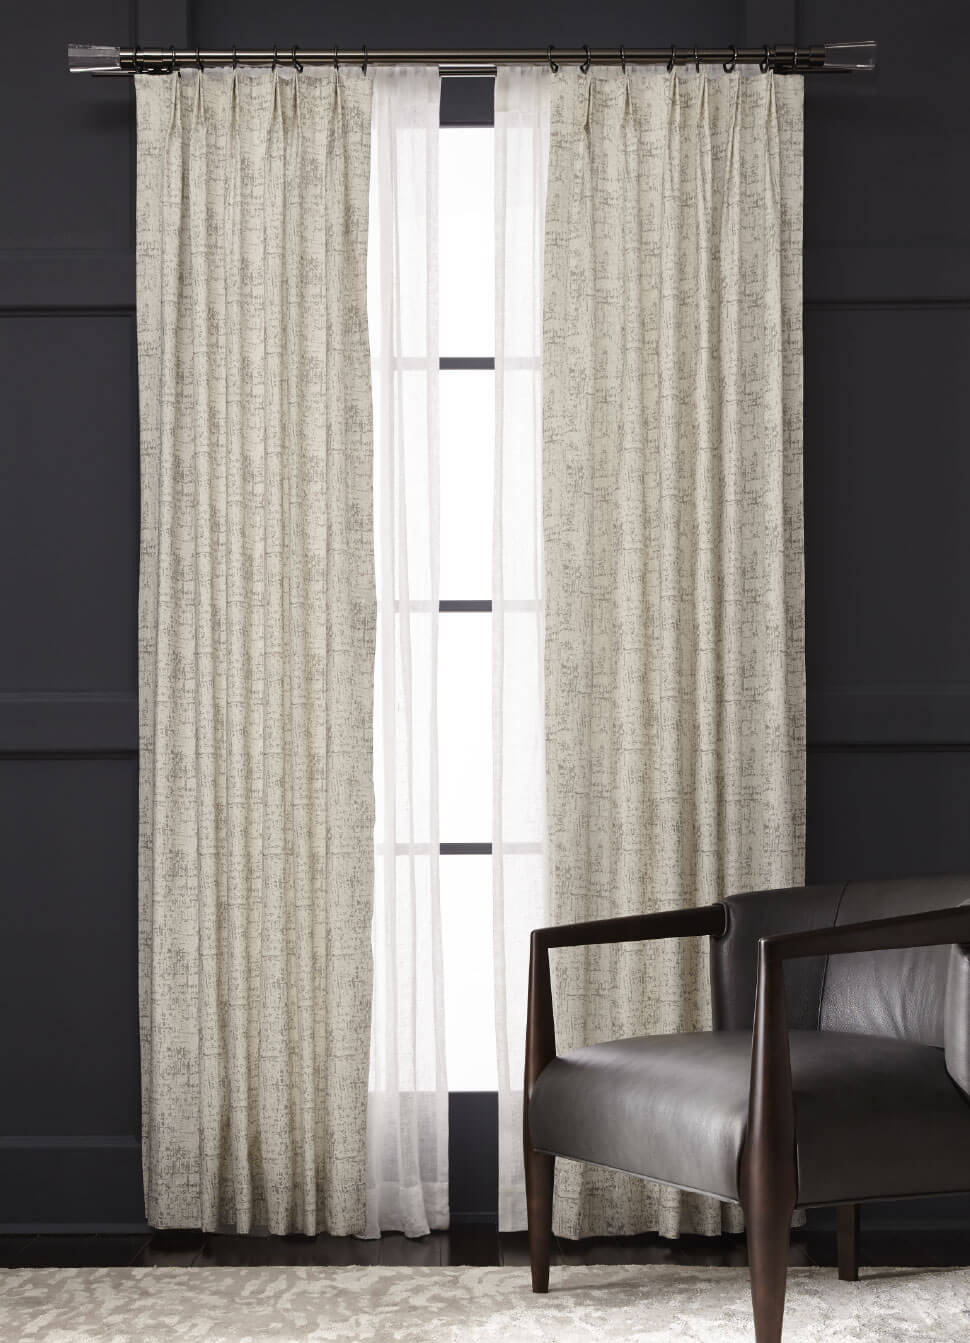 Birch drapery collection: Pattern